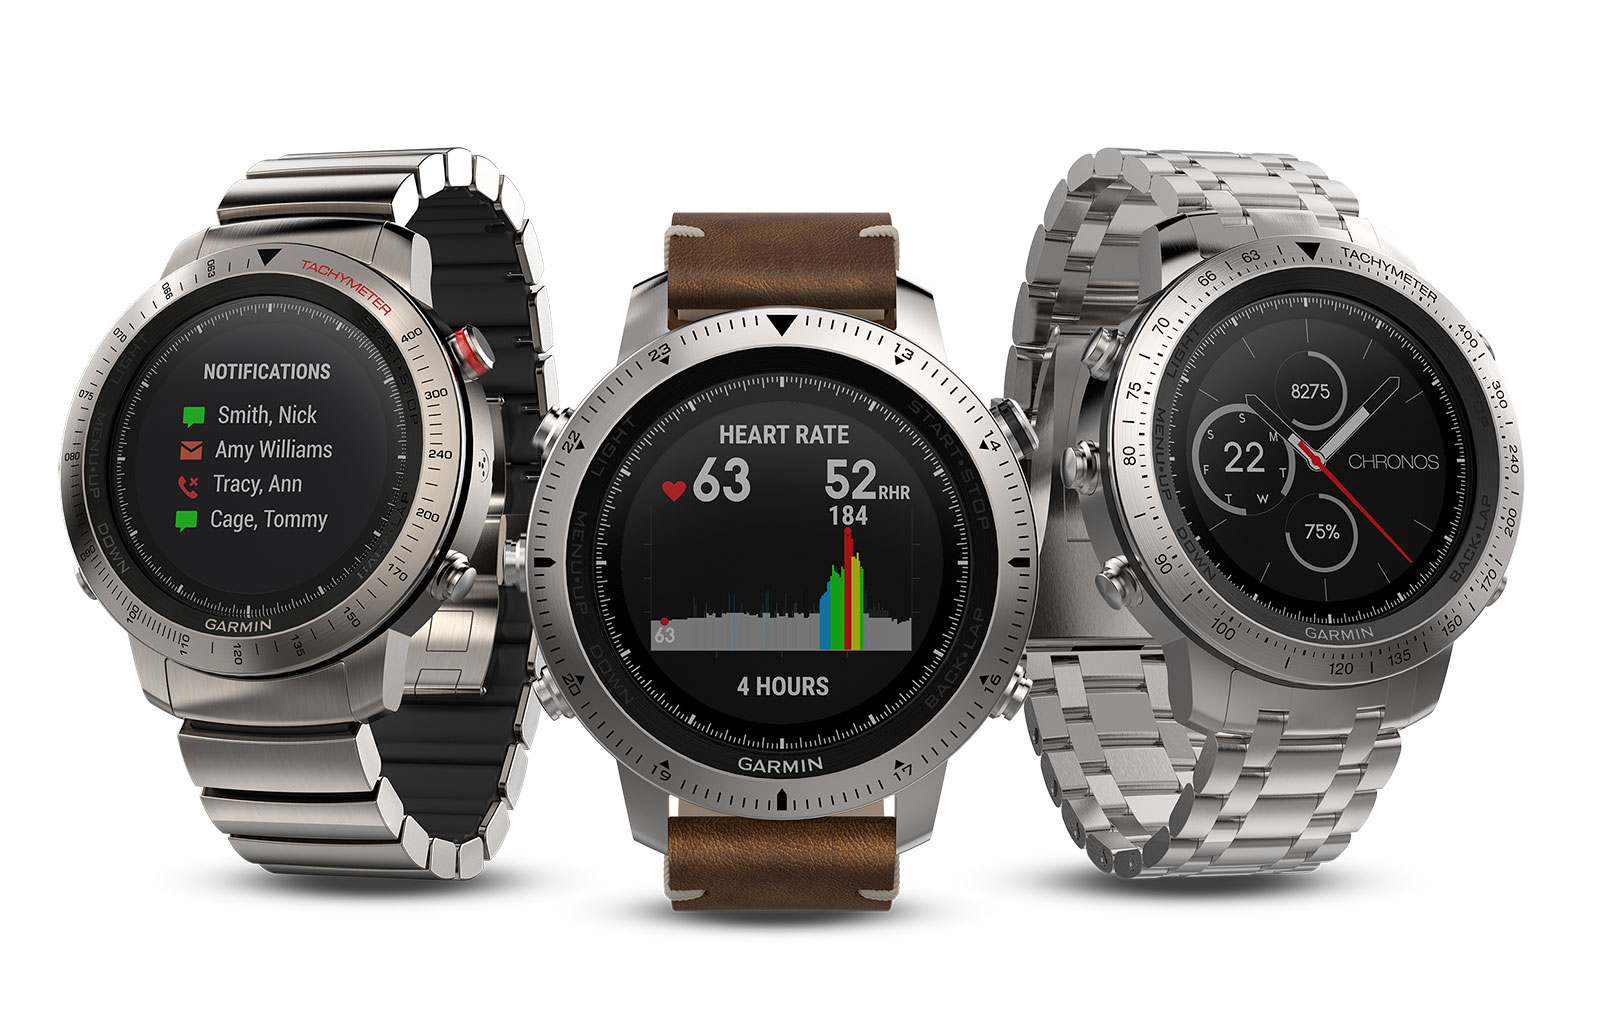 garmin fenix chronos exklusive gps multisport uhr. Black Bedroom Furniture Sets. Home Design Ideas